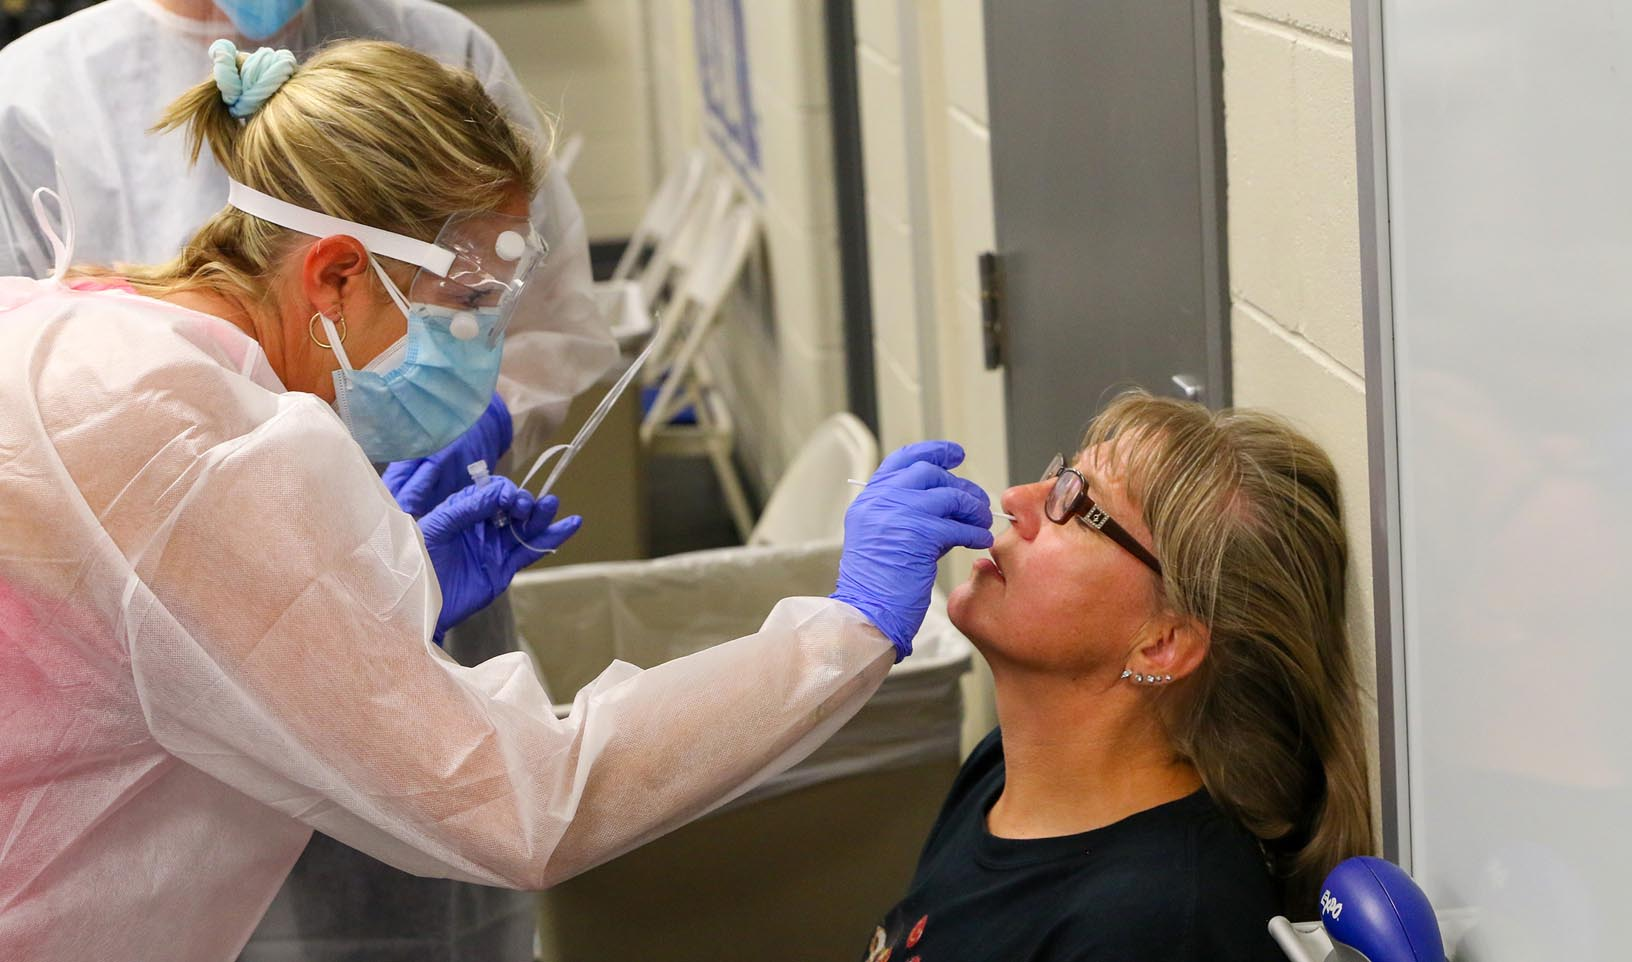 UNK biology professor Kim Carlson, right, is tested for COVID-19 on Thursday during a trial run for a new campus testing program. Beginning next week, UNK will randomly test students, staff and faculty for the novel coronavirus, allowing university leadership and health officials to more closely monitor case numbers. (Photos by Todd Gottula, UNK Communications)